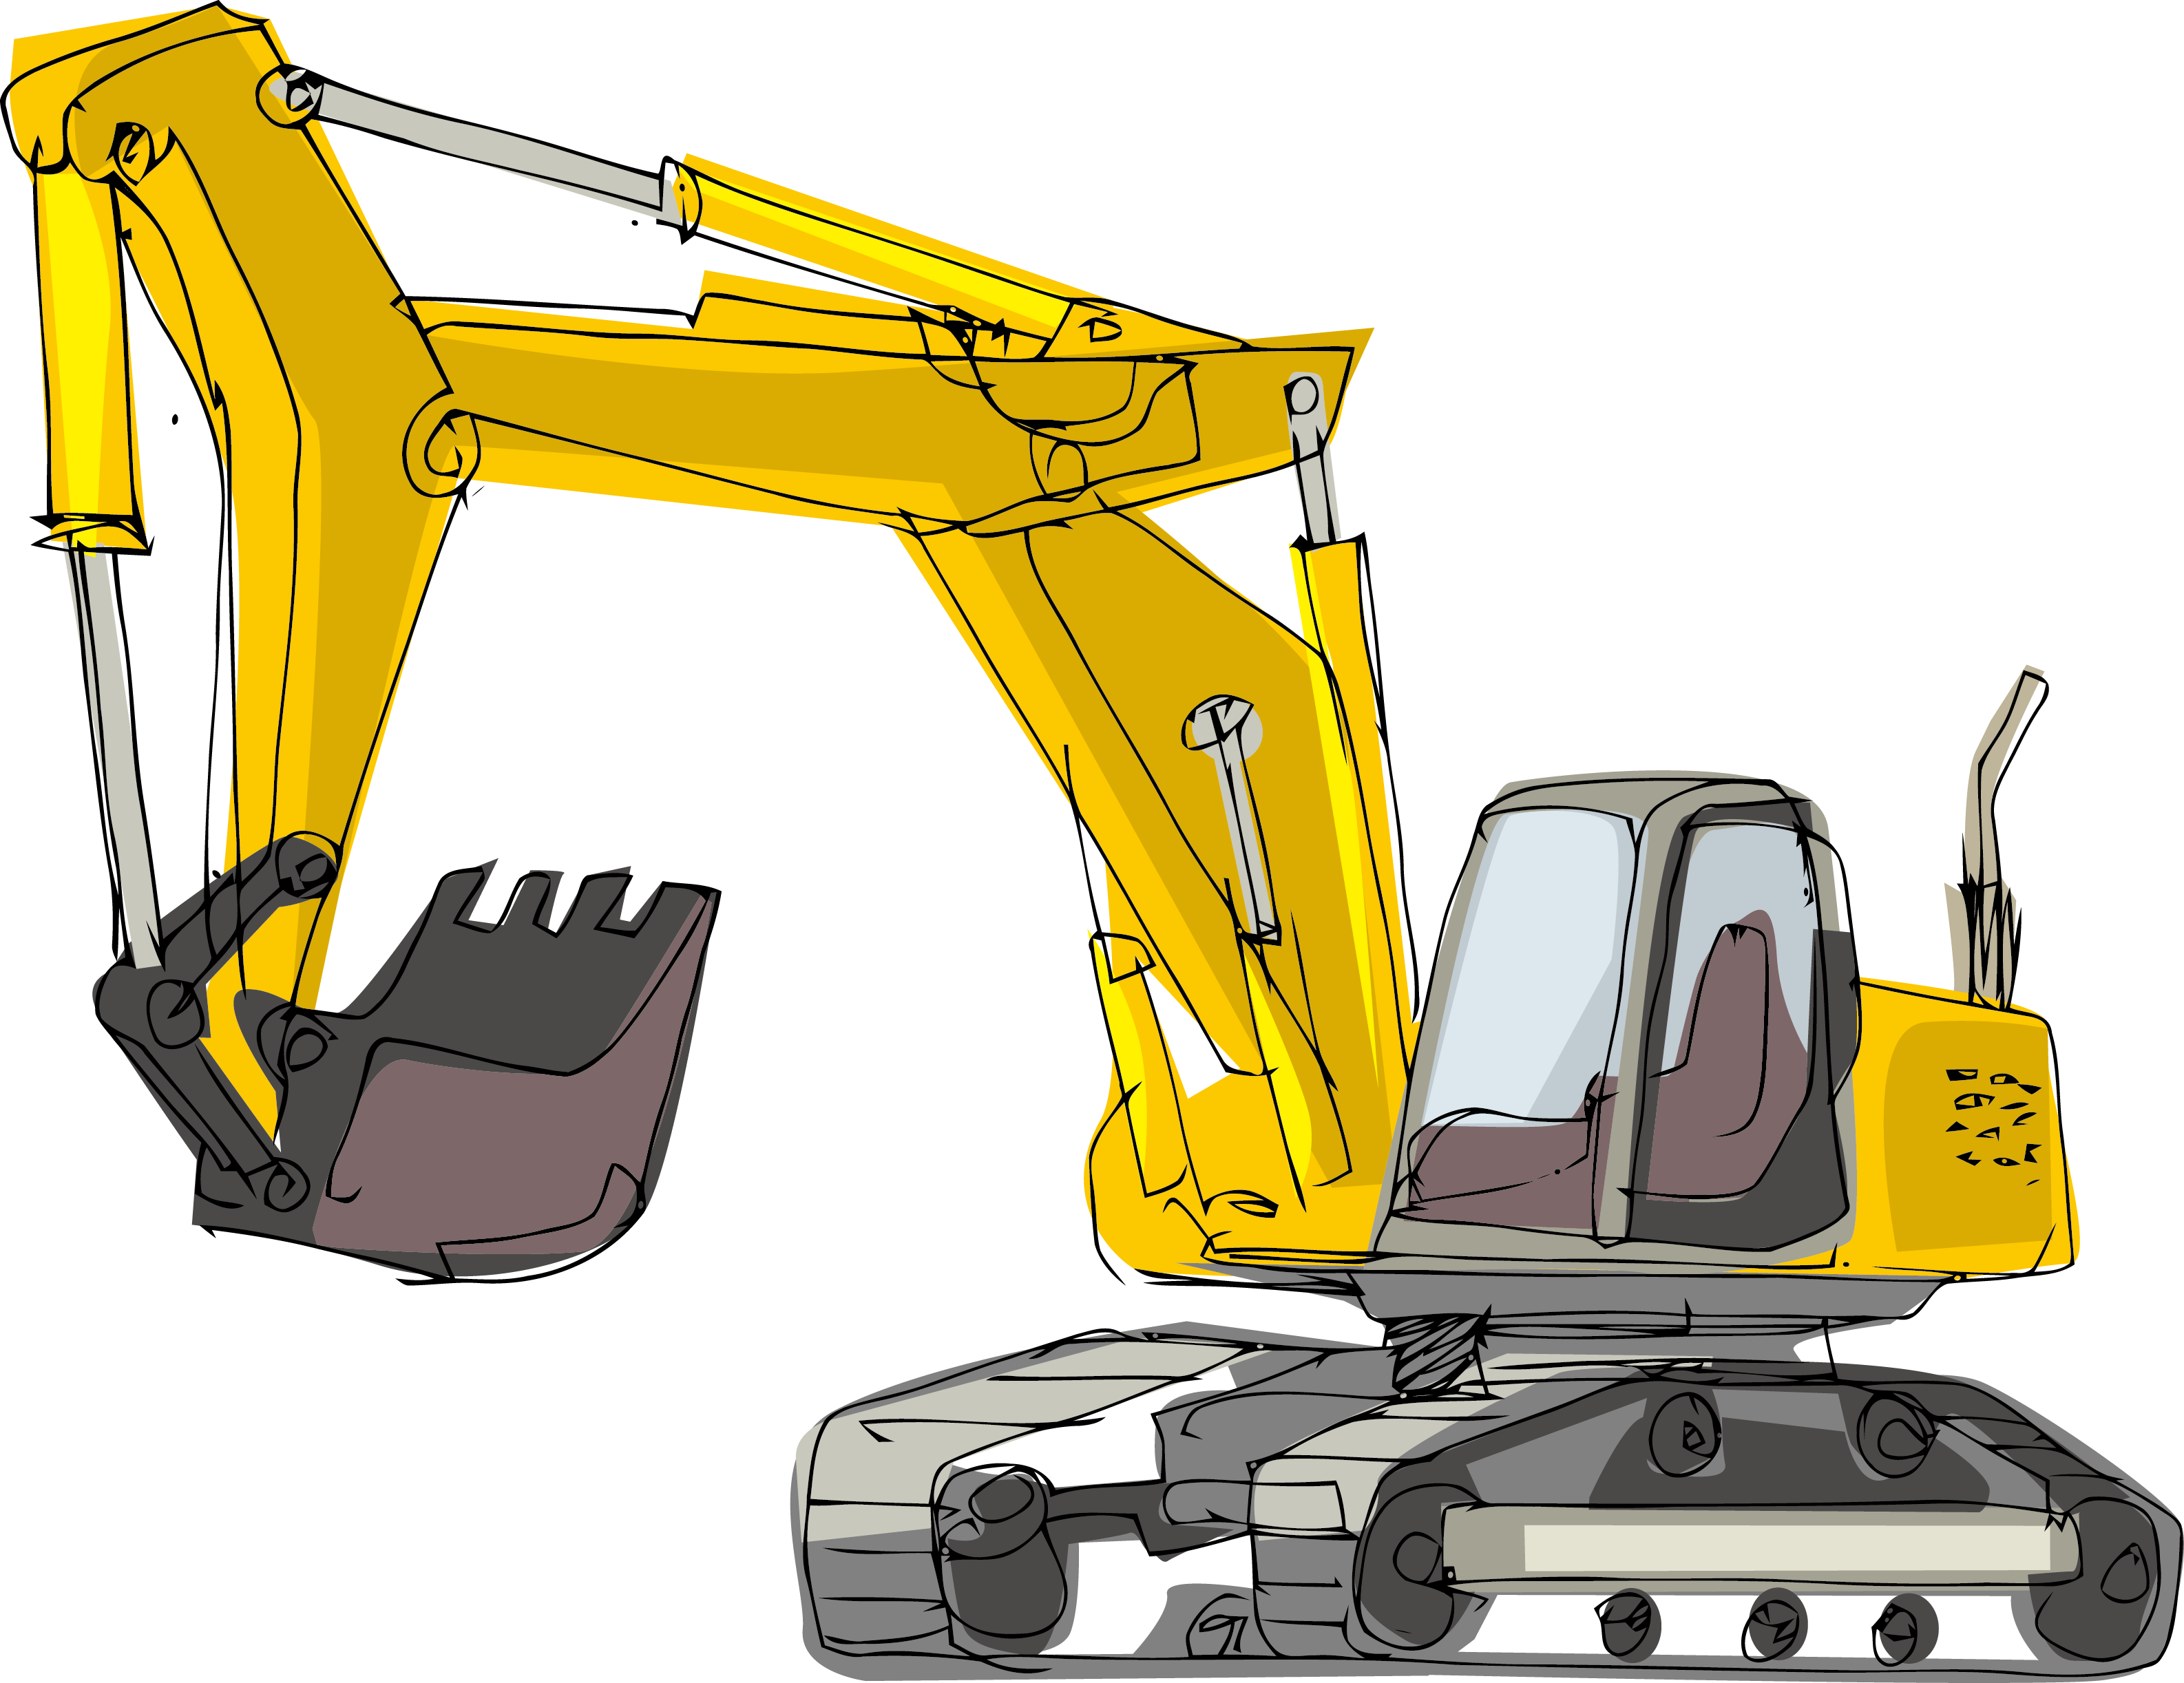 Excavator clipart mechanical. Cartoon architectural engineering hand